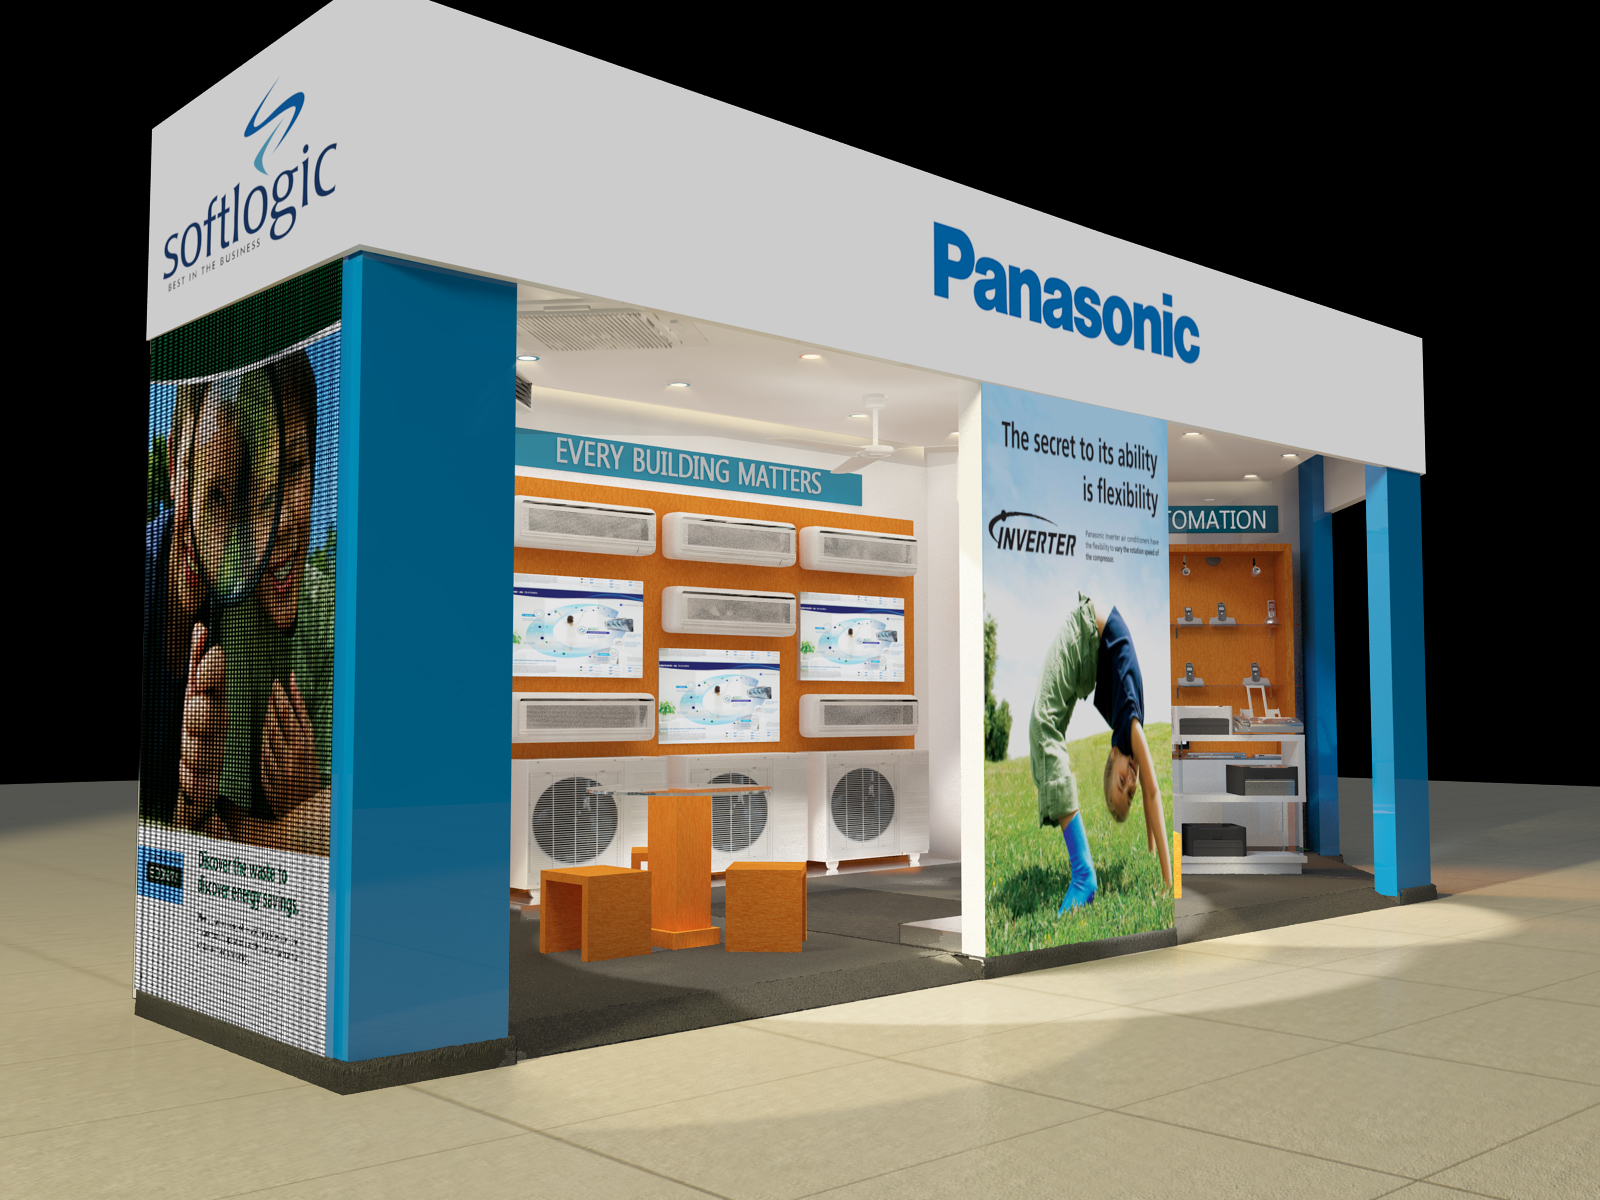 Exhibition Stall Builders In Sri Lanka : Thilan s d artworks gallery panasonic exhibition stall